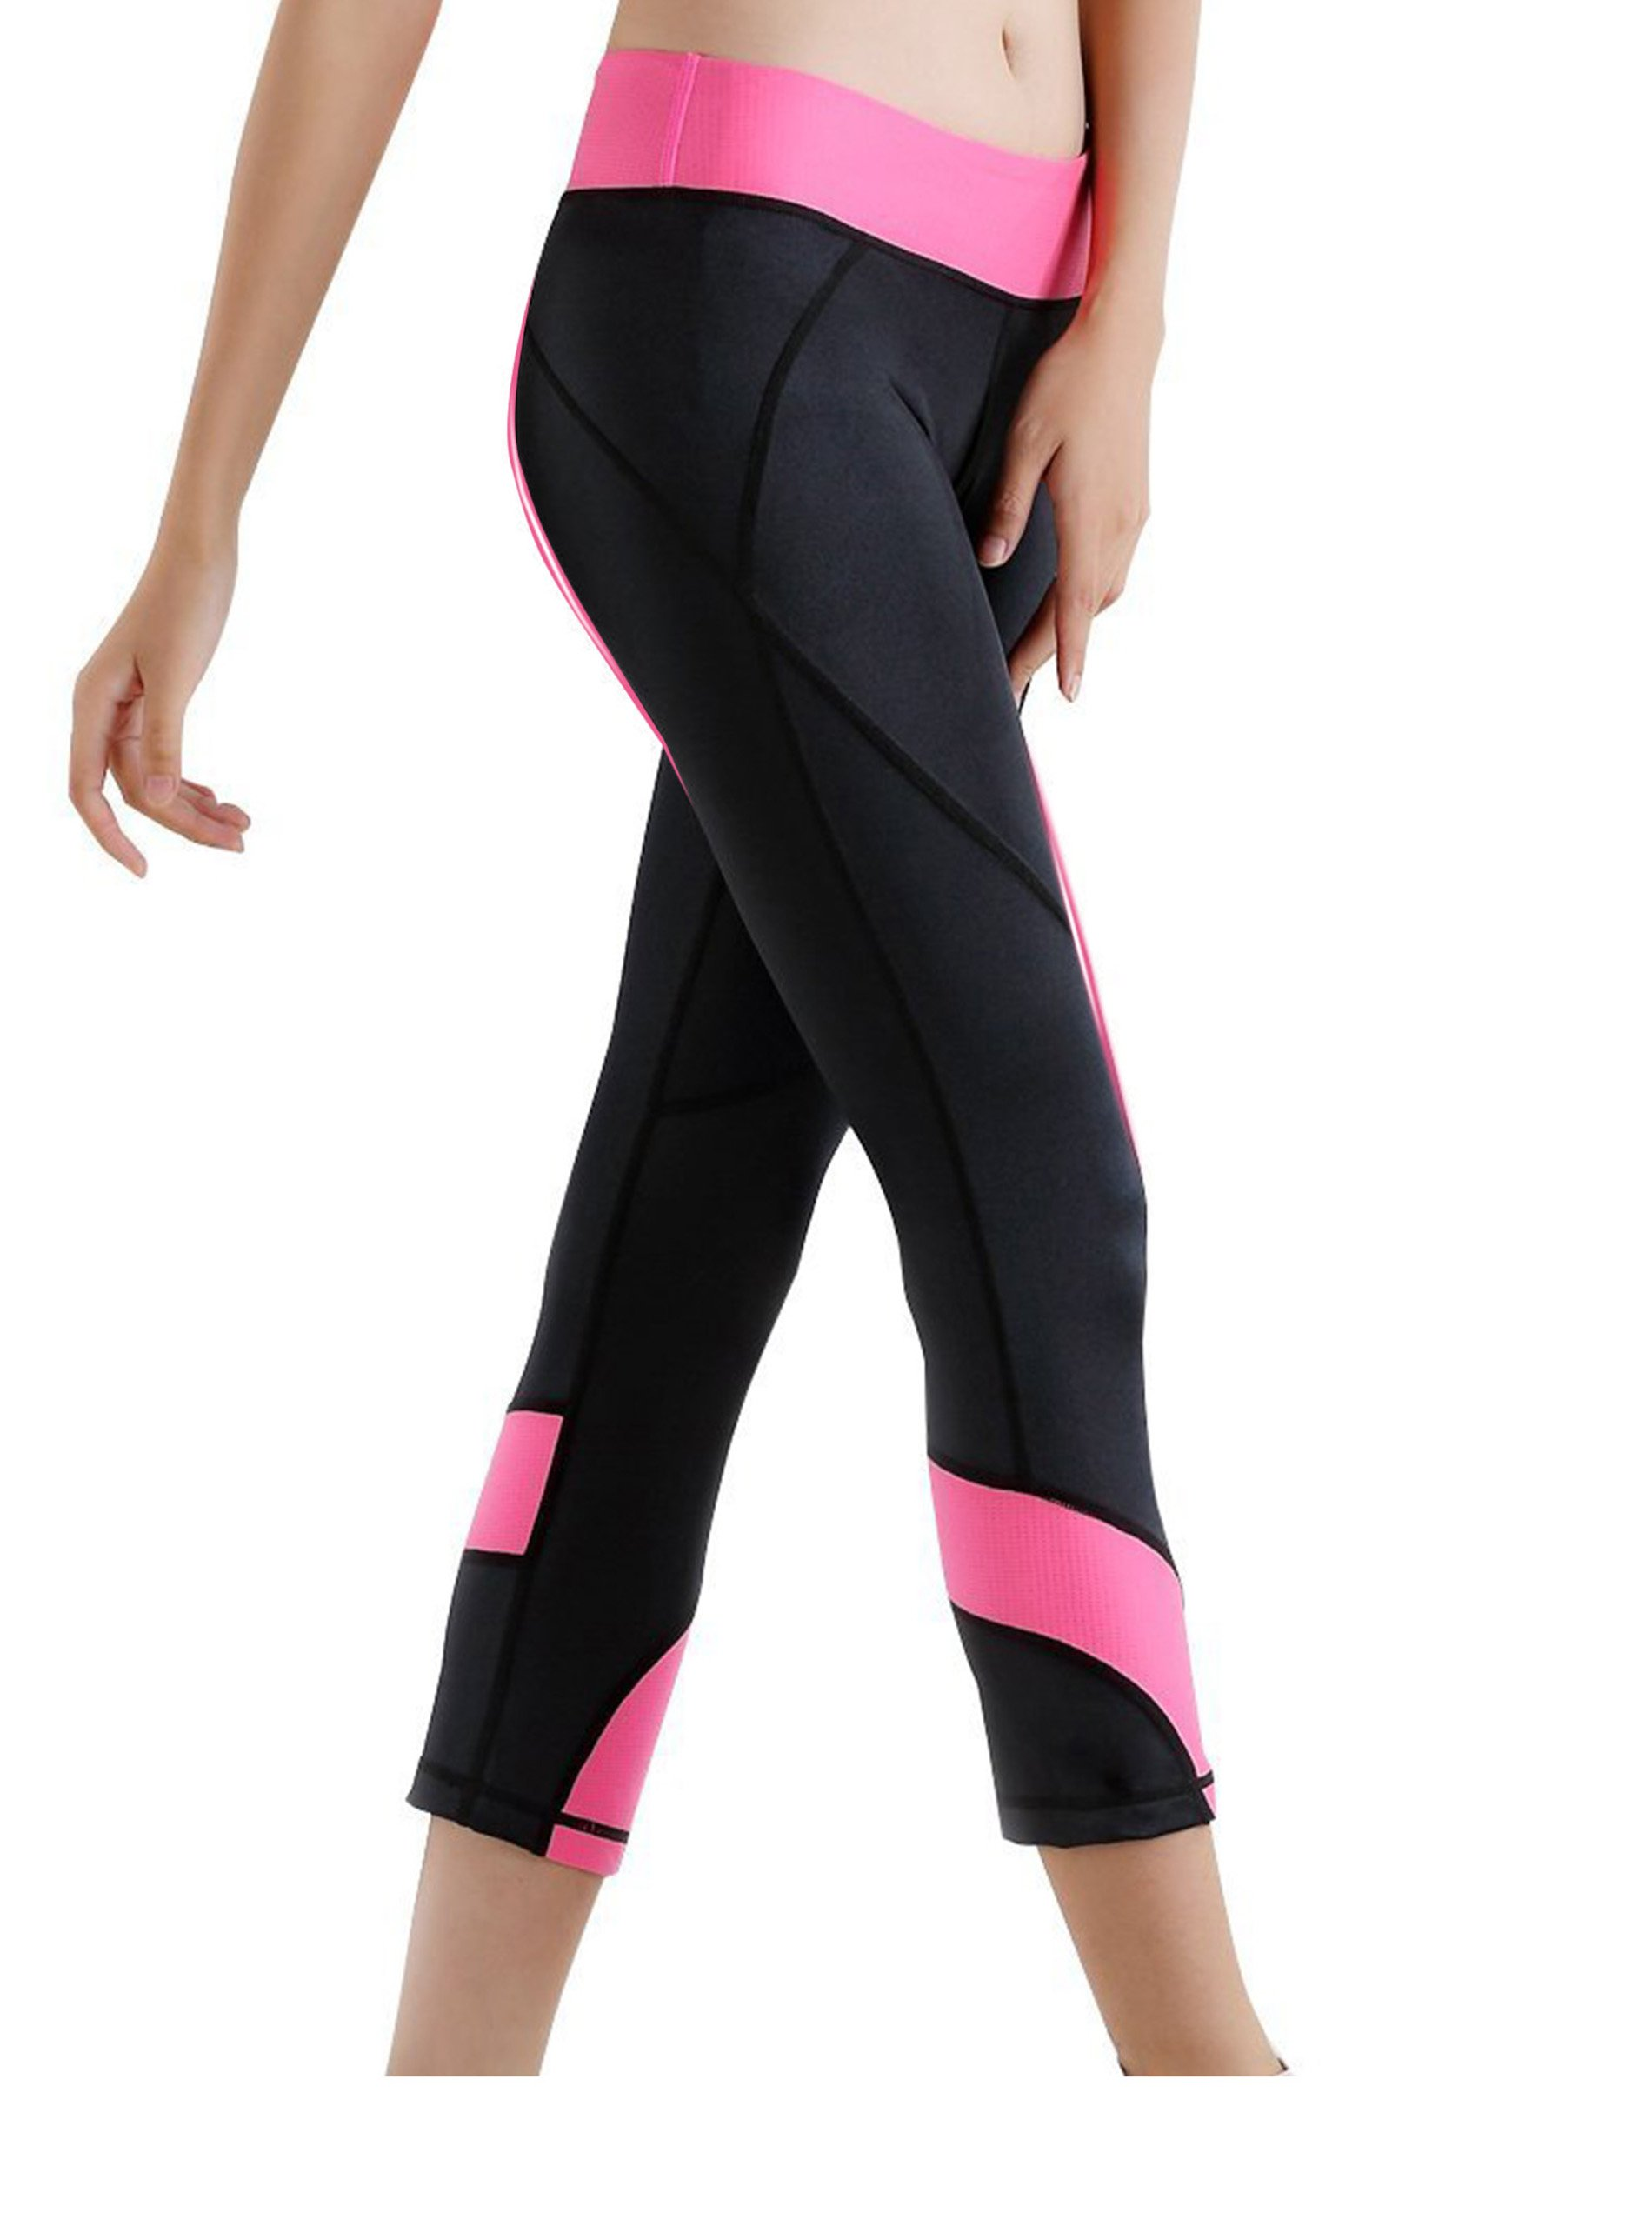 ZITY Funnyoga Reflex Women's Power Flex Workout Yoga Pants